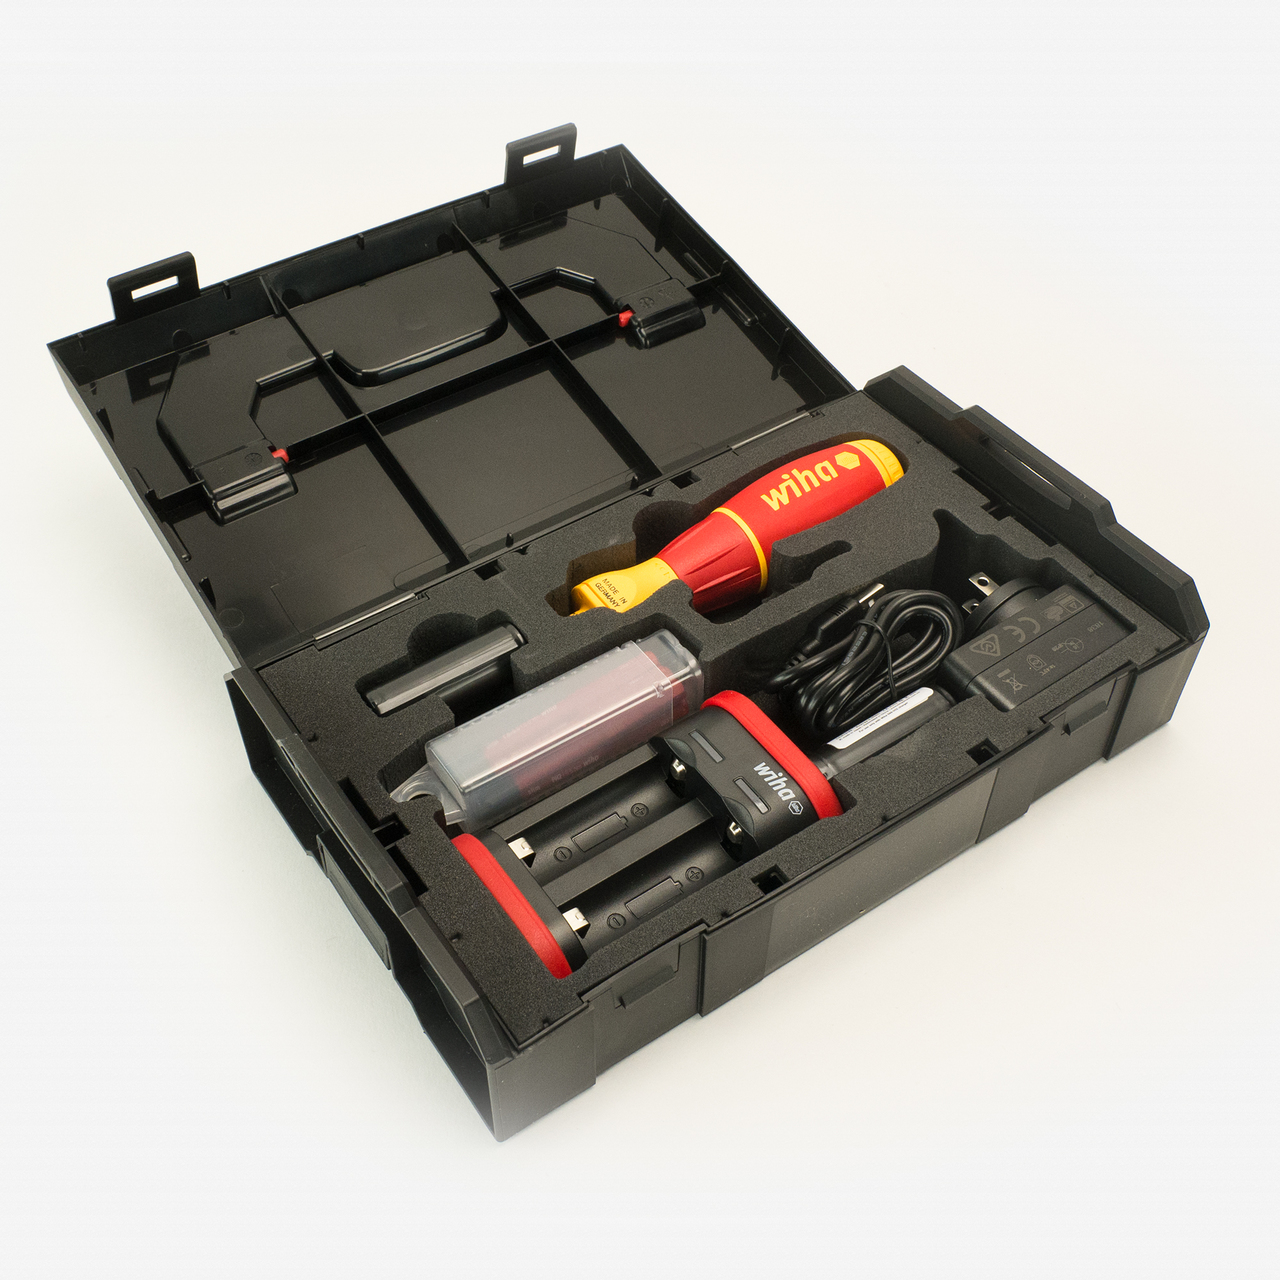 Wiha 32480 speedE Insulated Electric Screwdriver with SlimLine Blades - KC Tool